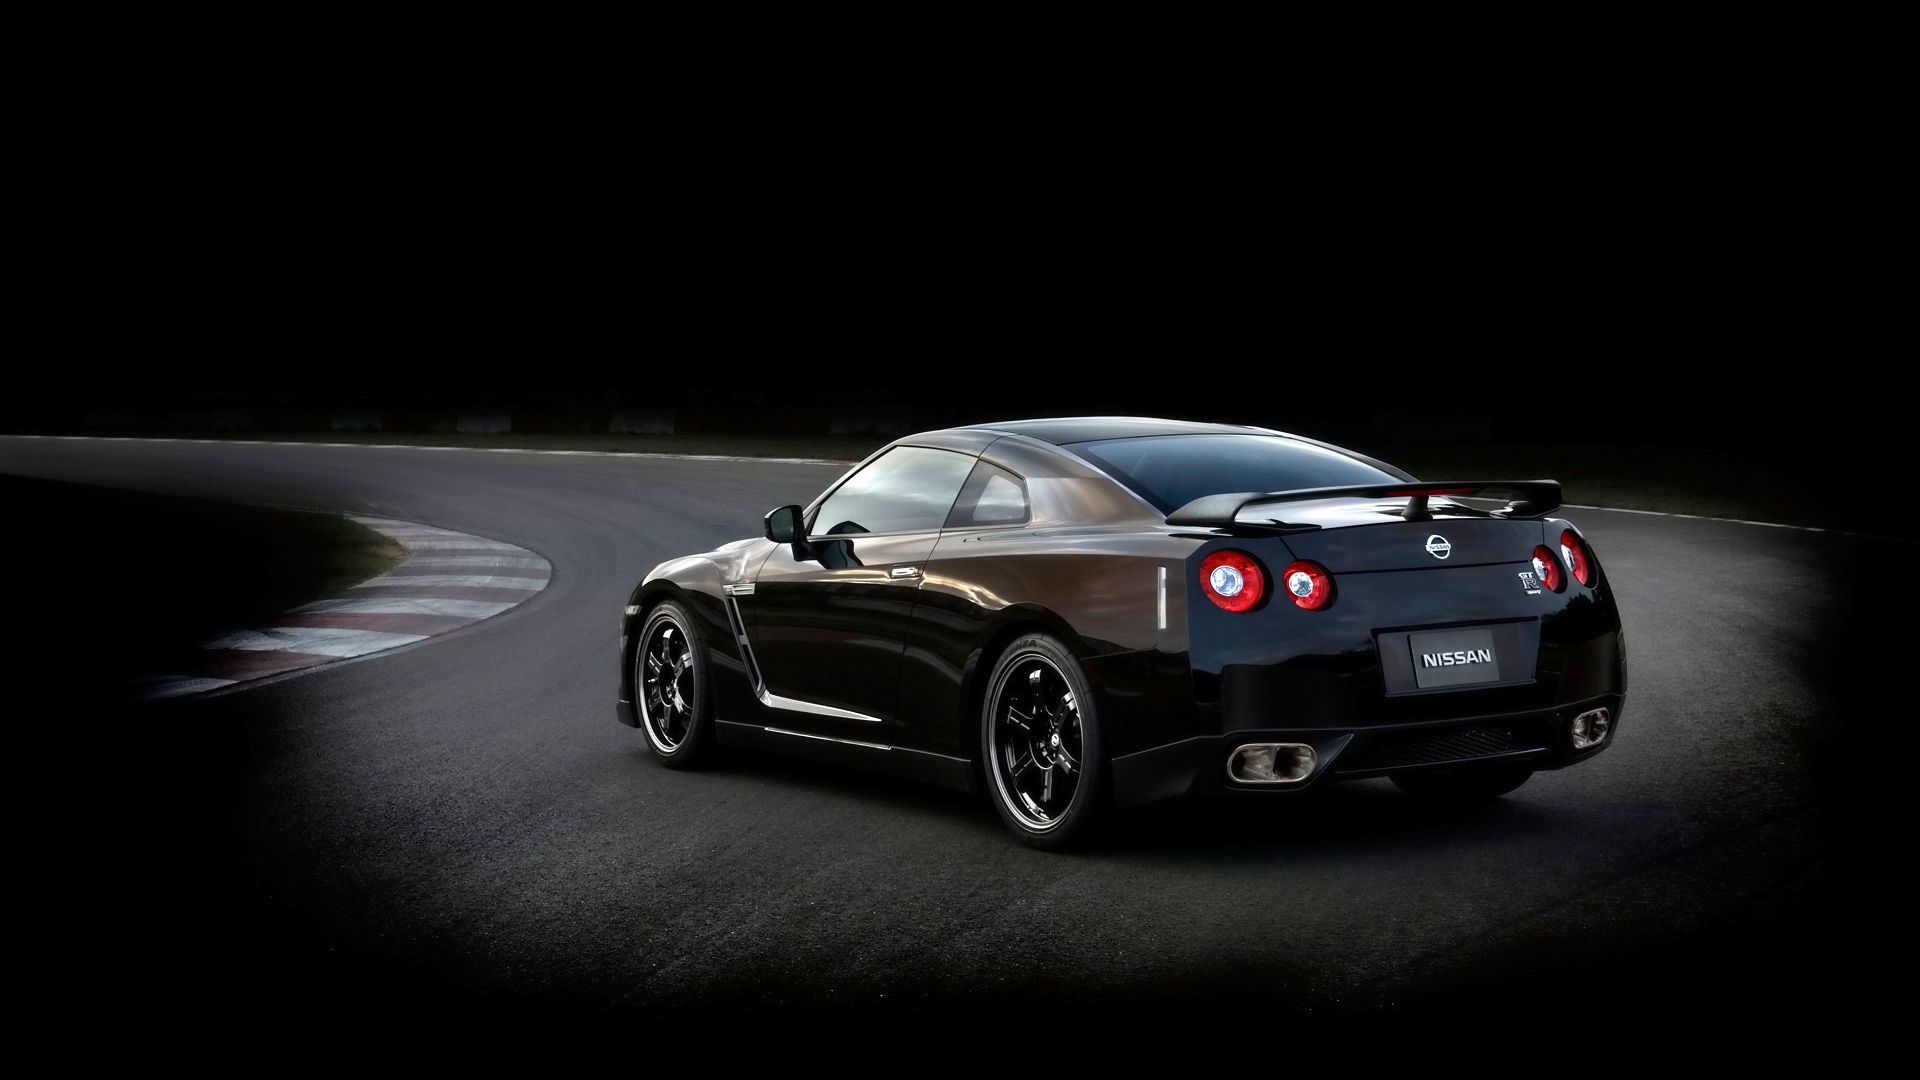 Free Download Nissan Gtr Wallpaper 5385 Hd Wallpapers In Cars Imagescicom 1920x1200 For Your Desktop Mobile Tablet Explore 71 Nissan Gt R Wallpaper Nissan Skyline Gtr Wallpaper Nissan Skyline